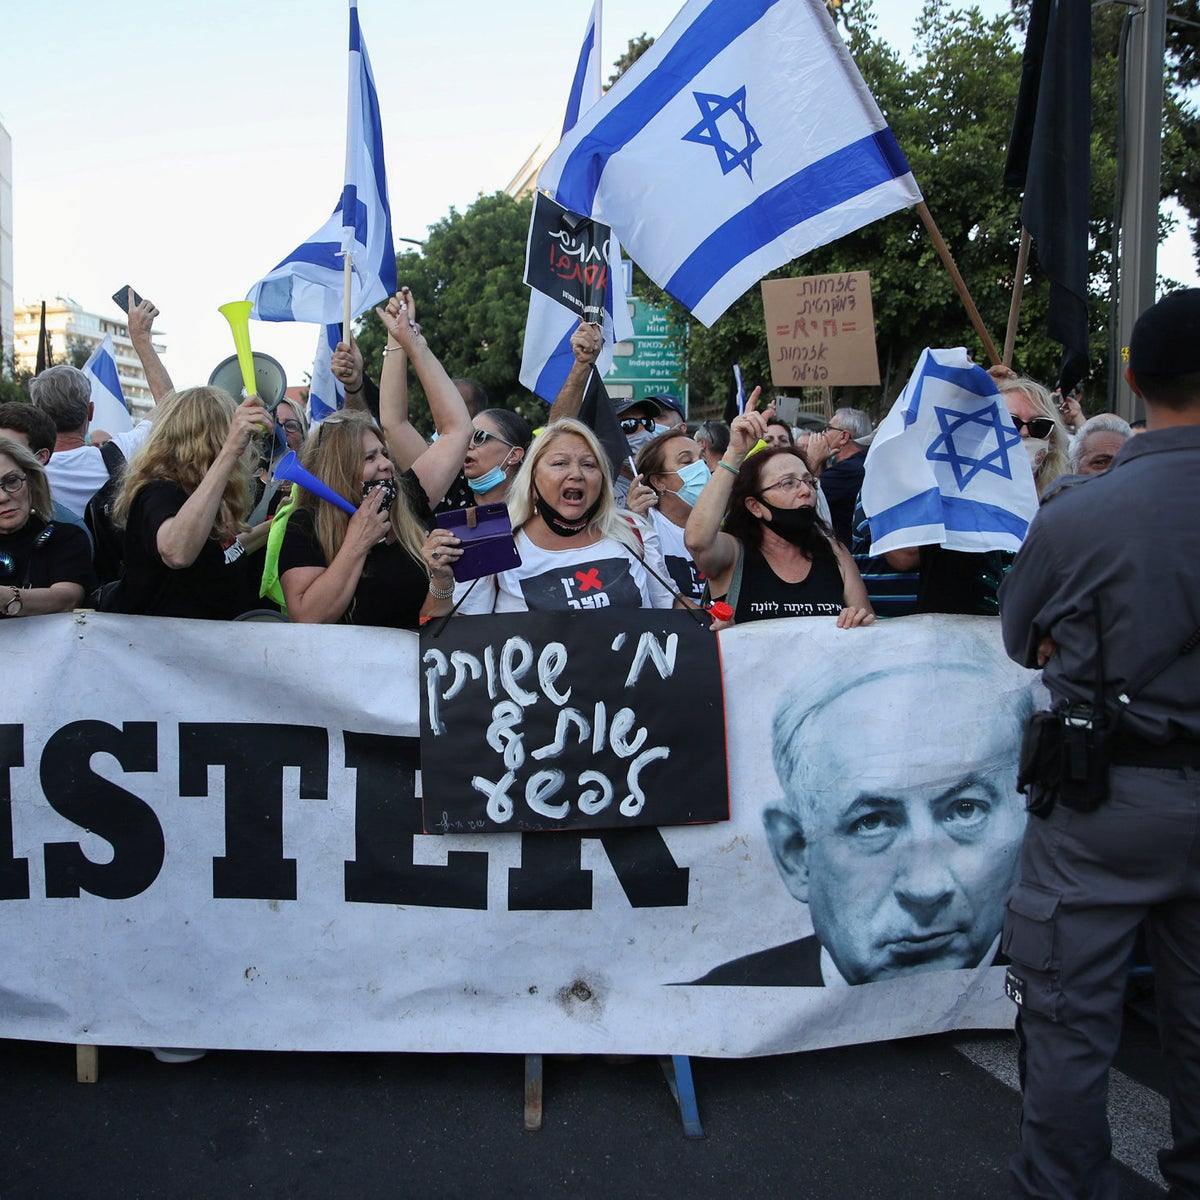 An anti-Netanyahu protest taking place in front of the Prime Minister's Residence in Jerusalem, June 27, 2020.